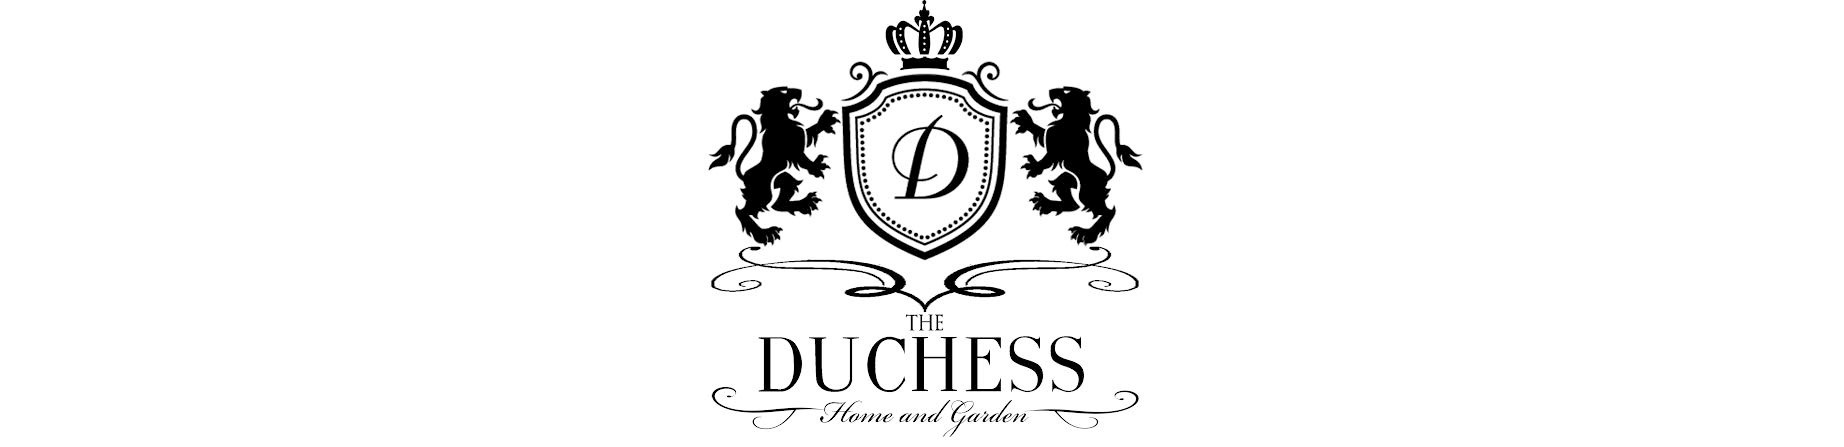 The Duchess Home and Garden